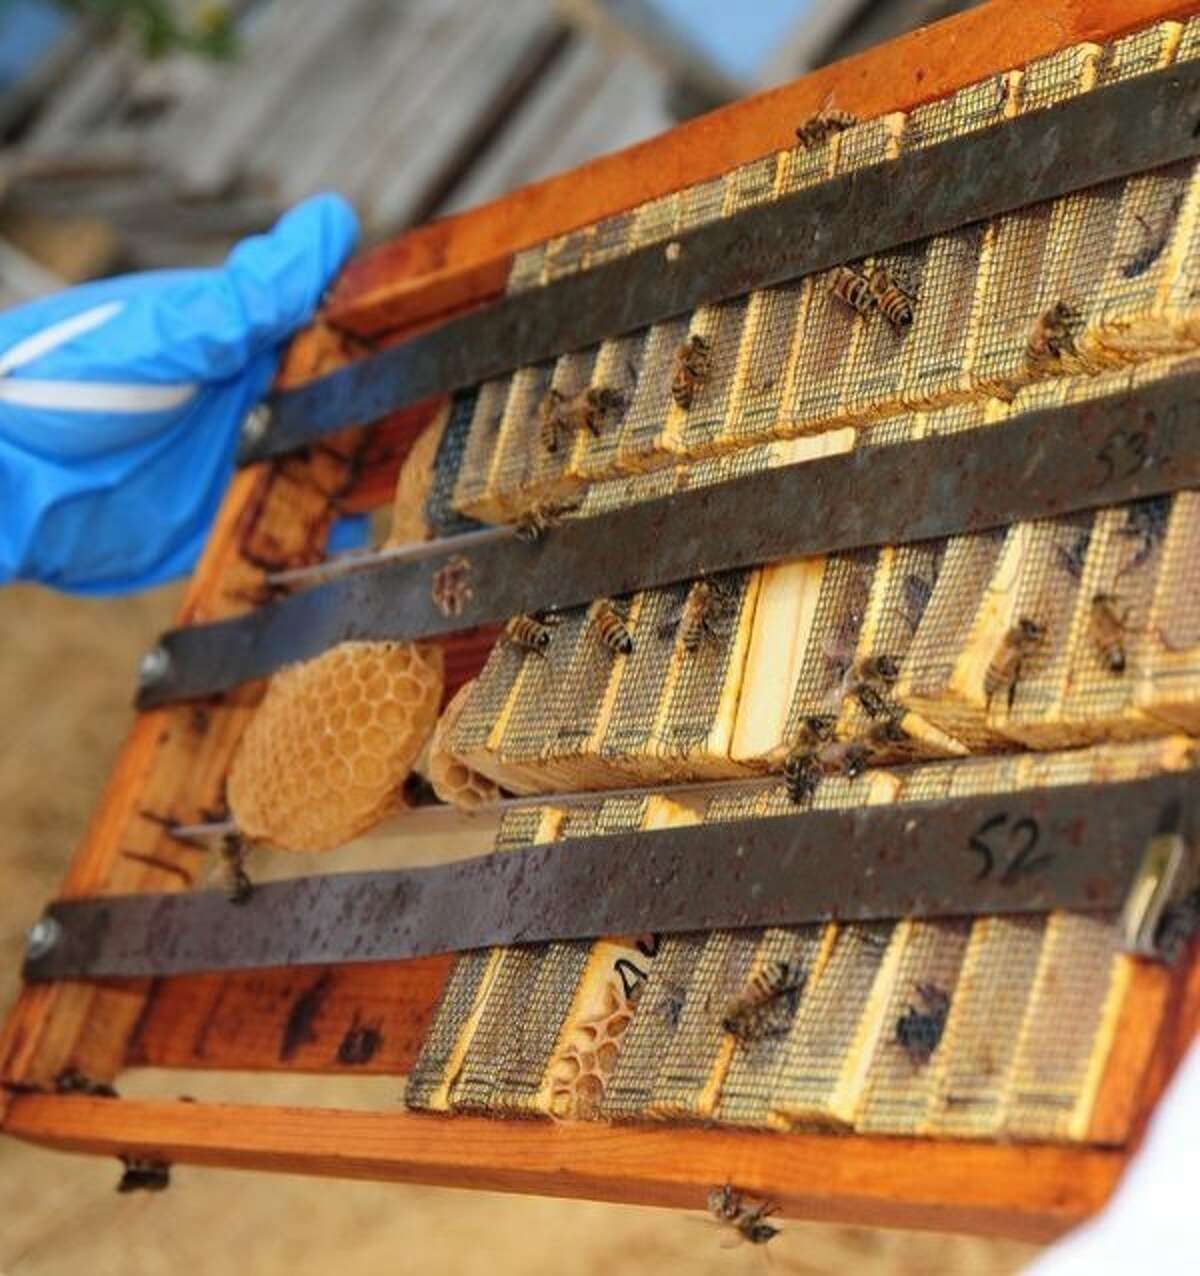 A cage of queens bred for specific pollen hoarding traits at the Harry H. Laidlaw Jr. Honey Bee Research Facility at UC Davis.